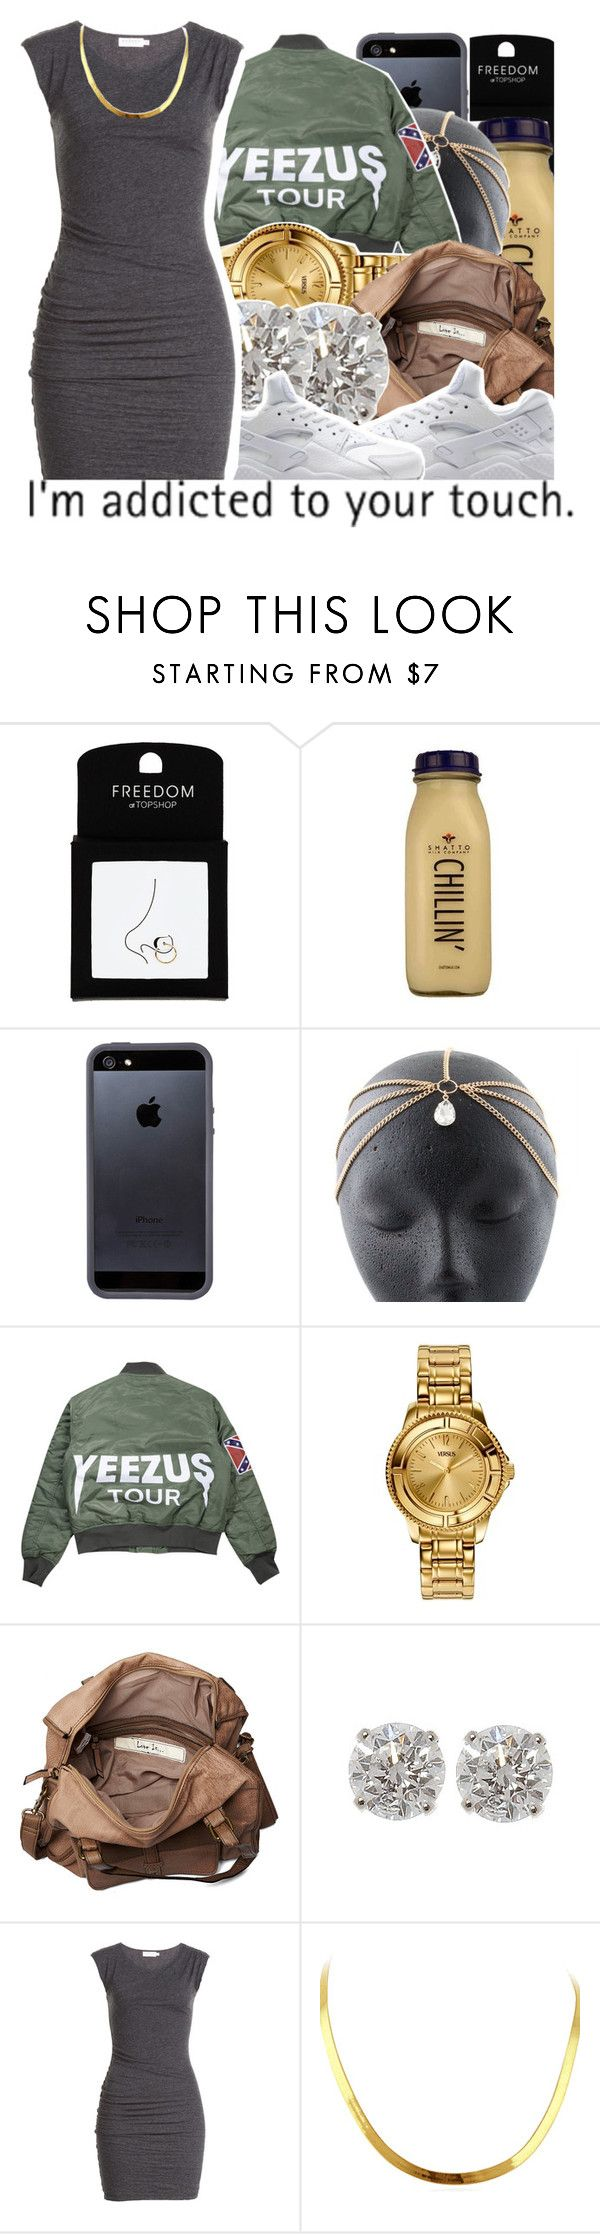 """""""Destiny🎱"""" by dopest-queens ❤ liked on Polyvore featuring Topshop, CO, Tavik Swimwear, Versus, Friis & Company, NIKE and Velvet"""